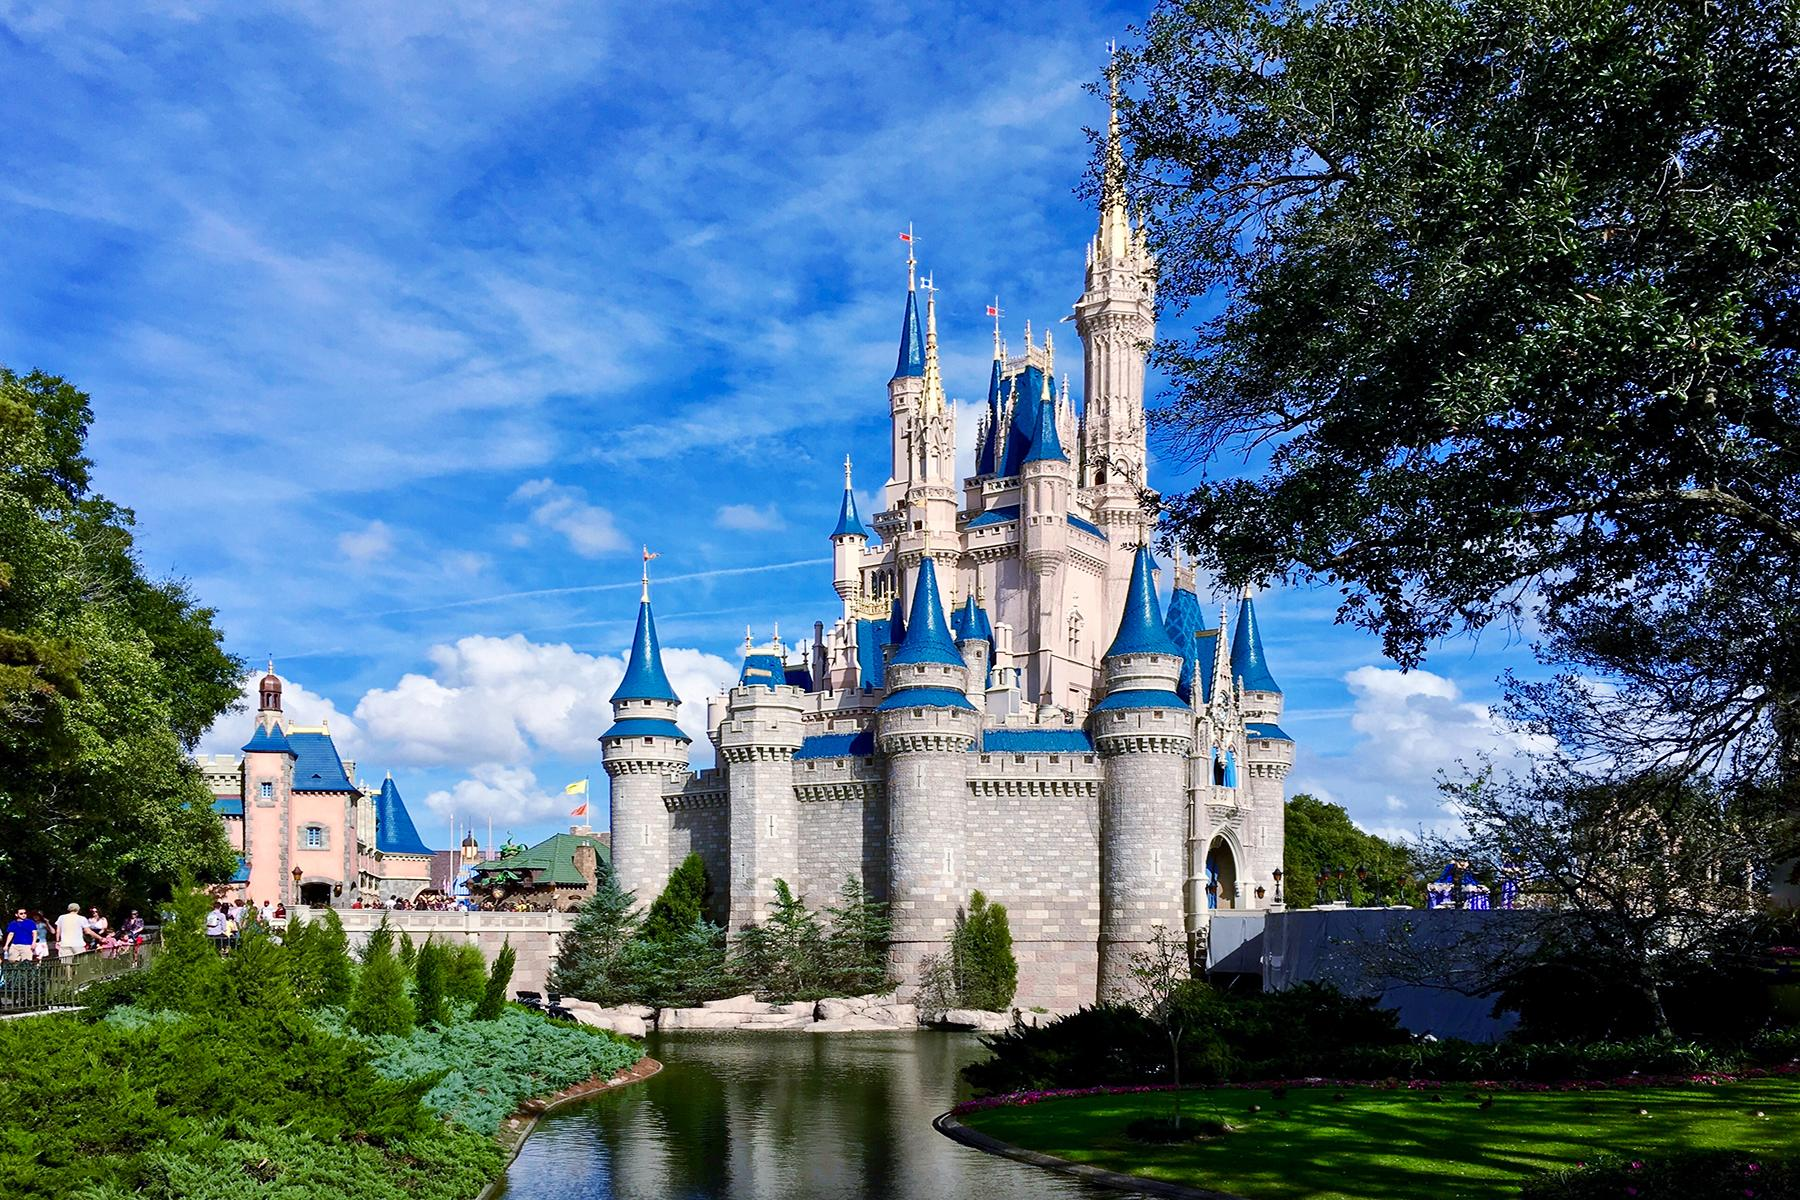 01_20USPlacestoSeeBeforeYouDie__WaltDisneyWorld'sMagicKingdom_dreamstime_xl_67726703